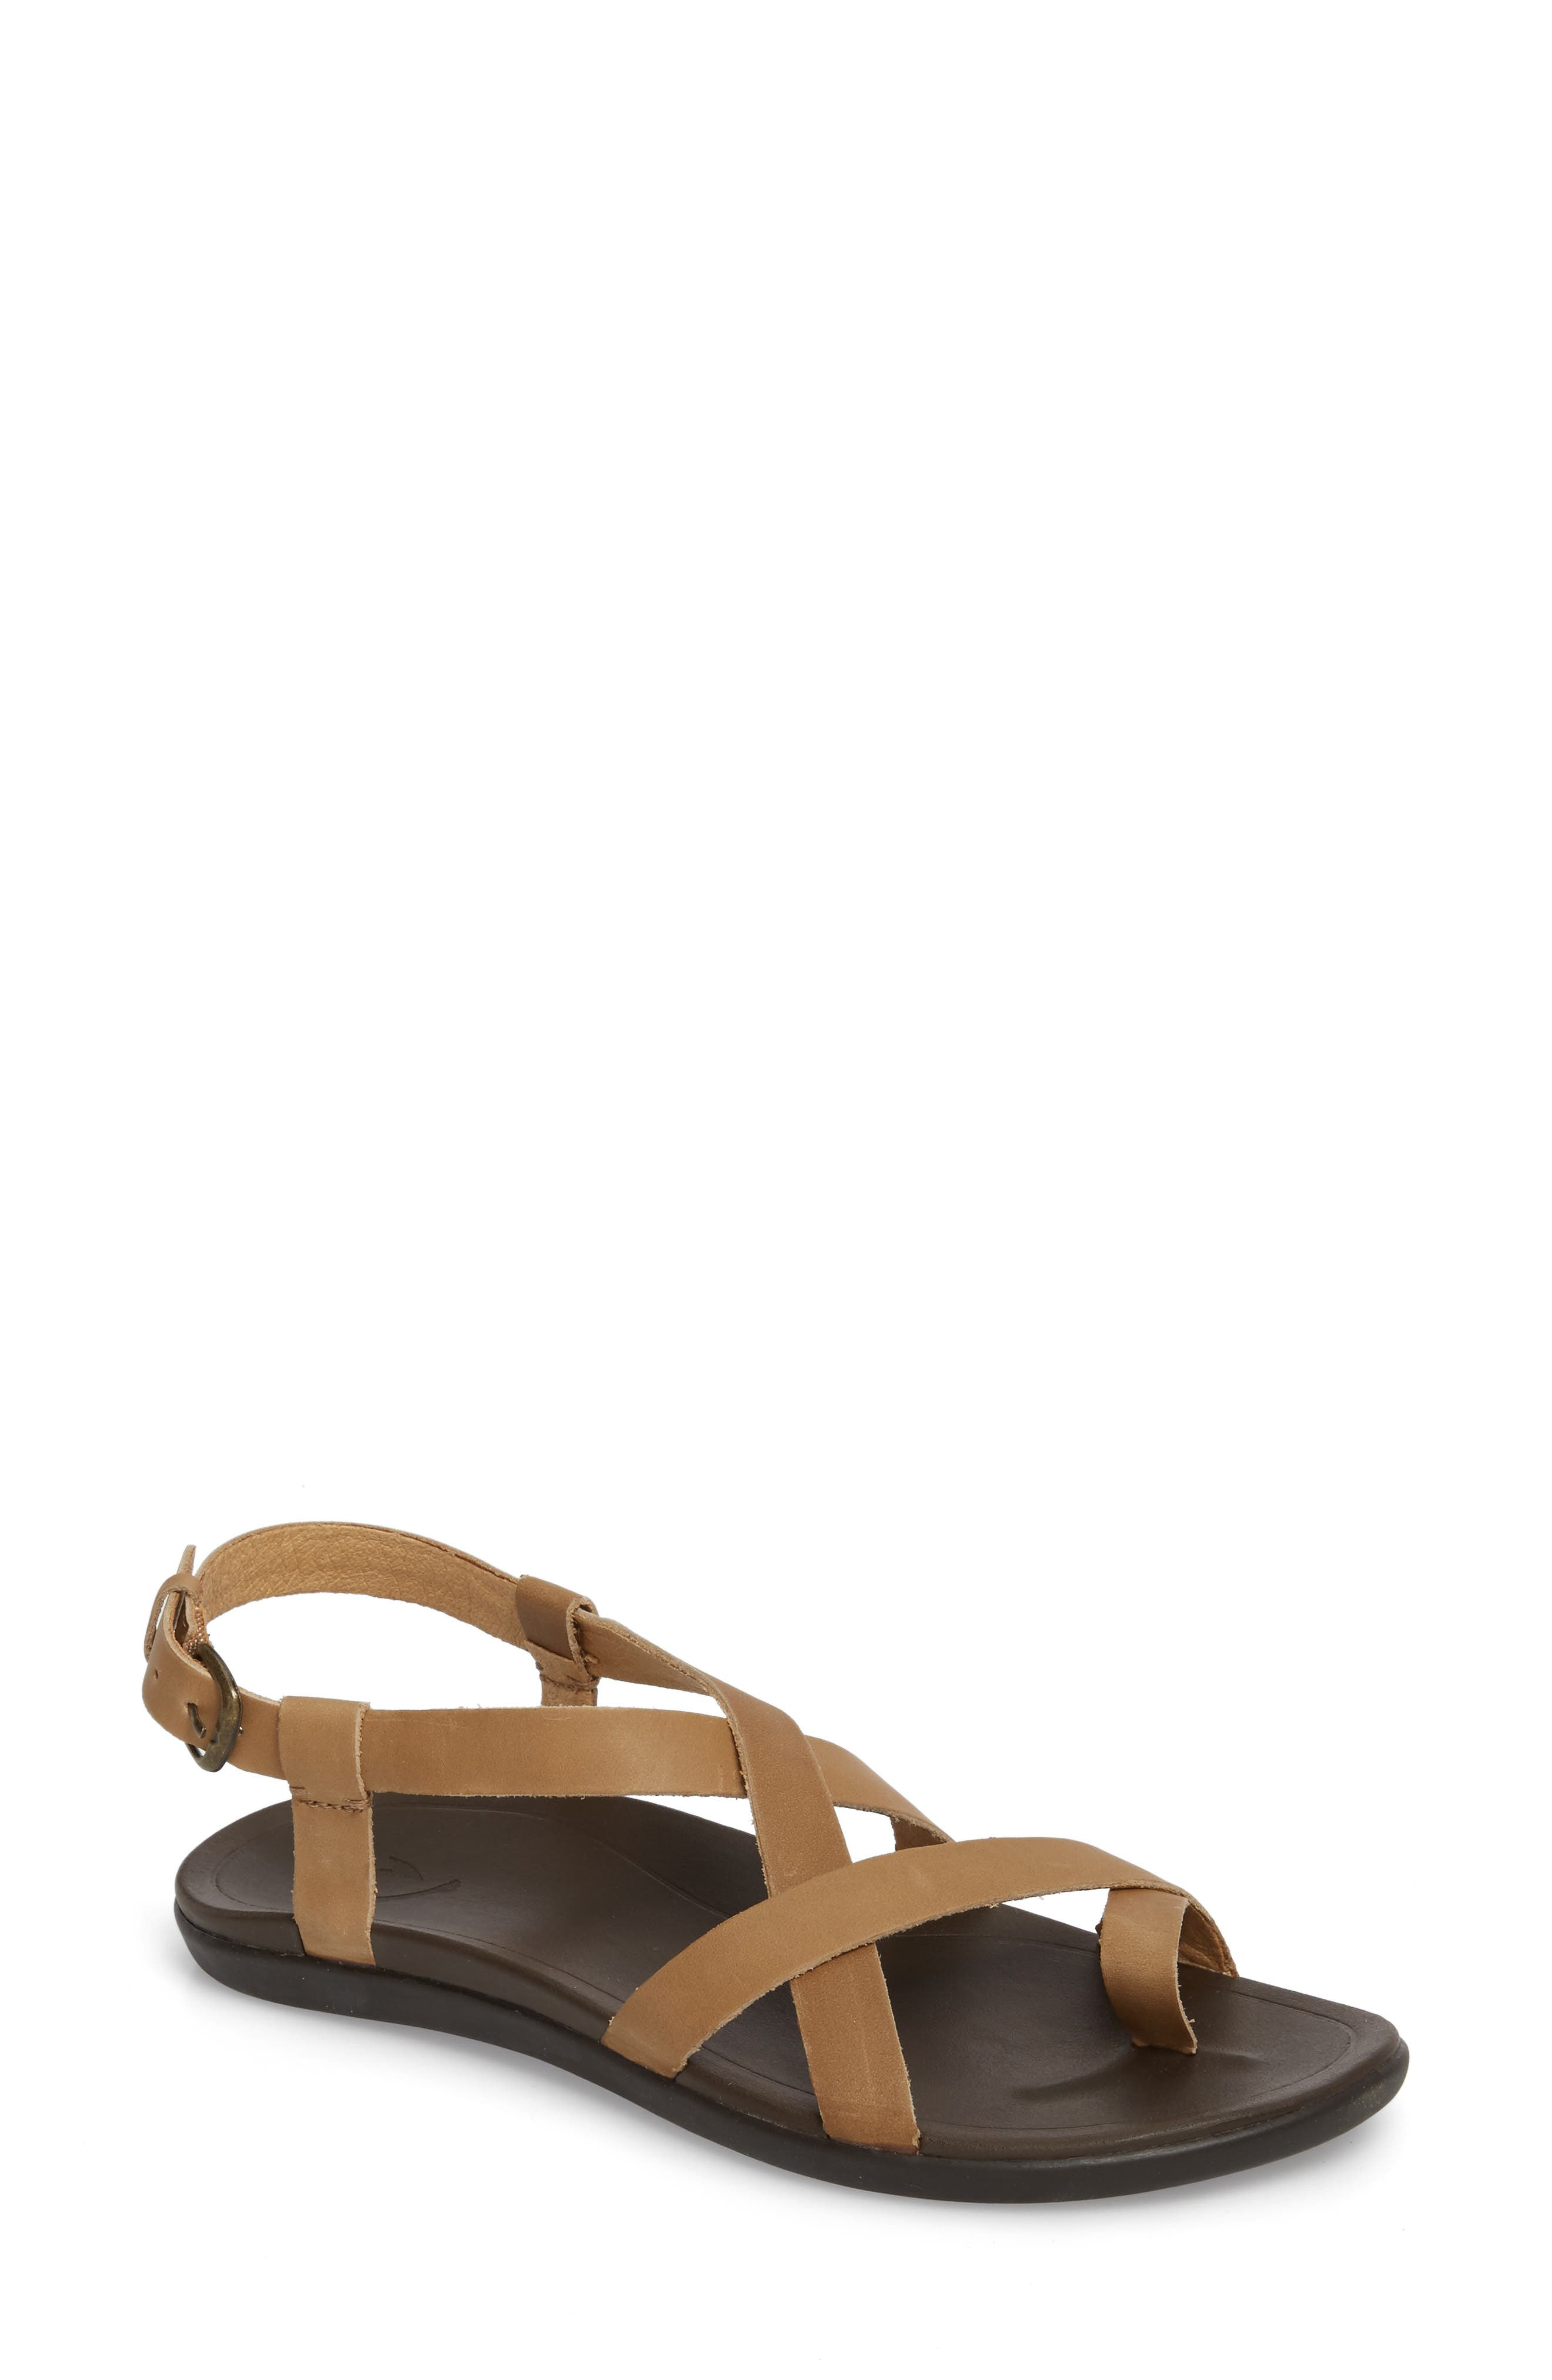 'Upena' Flat Sandal,                             Main thumbnail 1, color,                             GOLDEN SAND/ SAND LEATHER